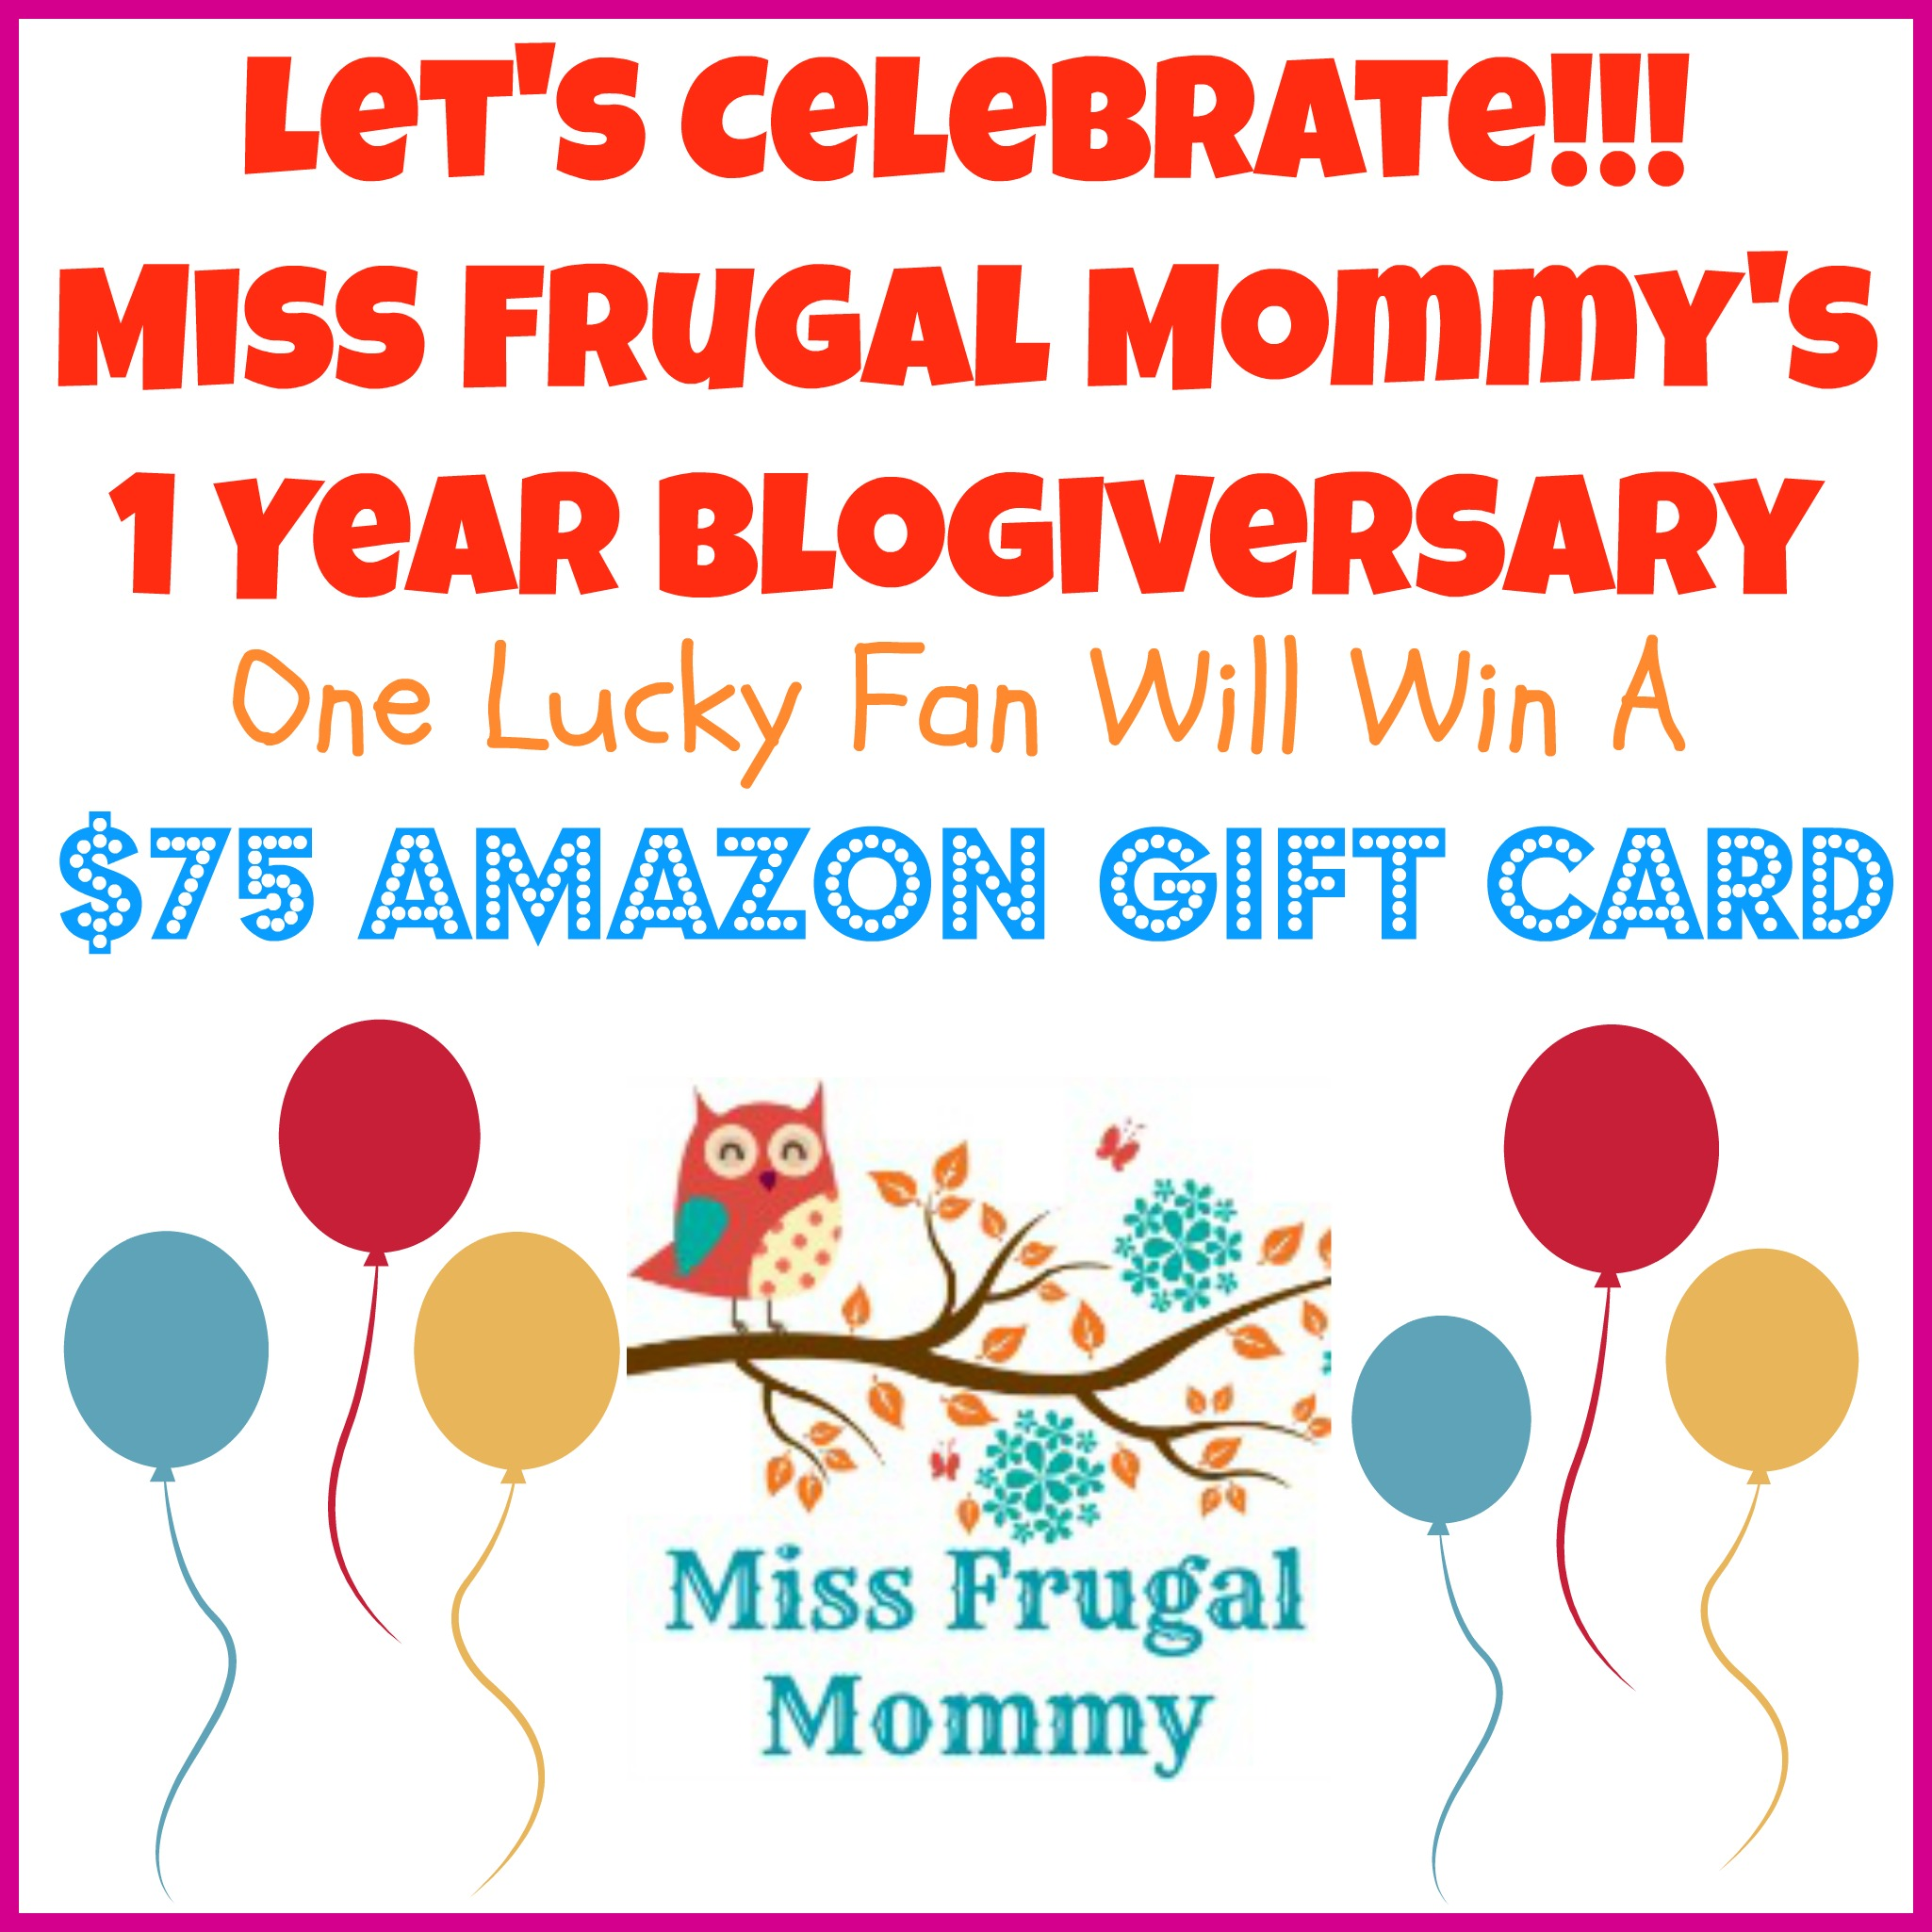 http://missfrugalmommy.com/wp-content/uploads/2014/02/Blogersary-Giveawayi.jpg